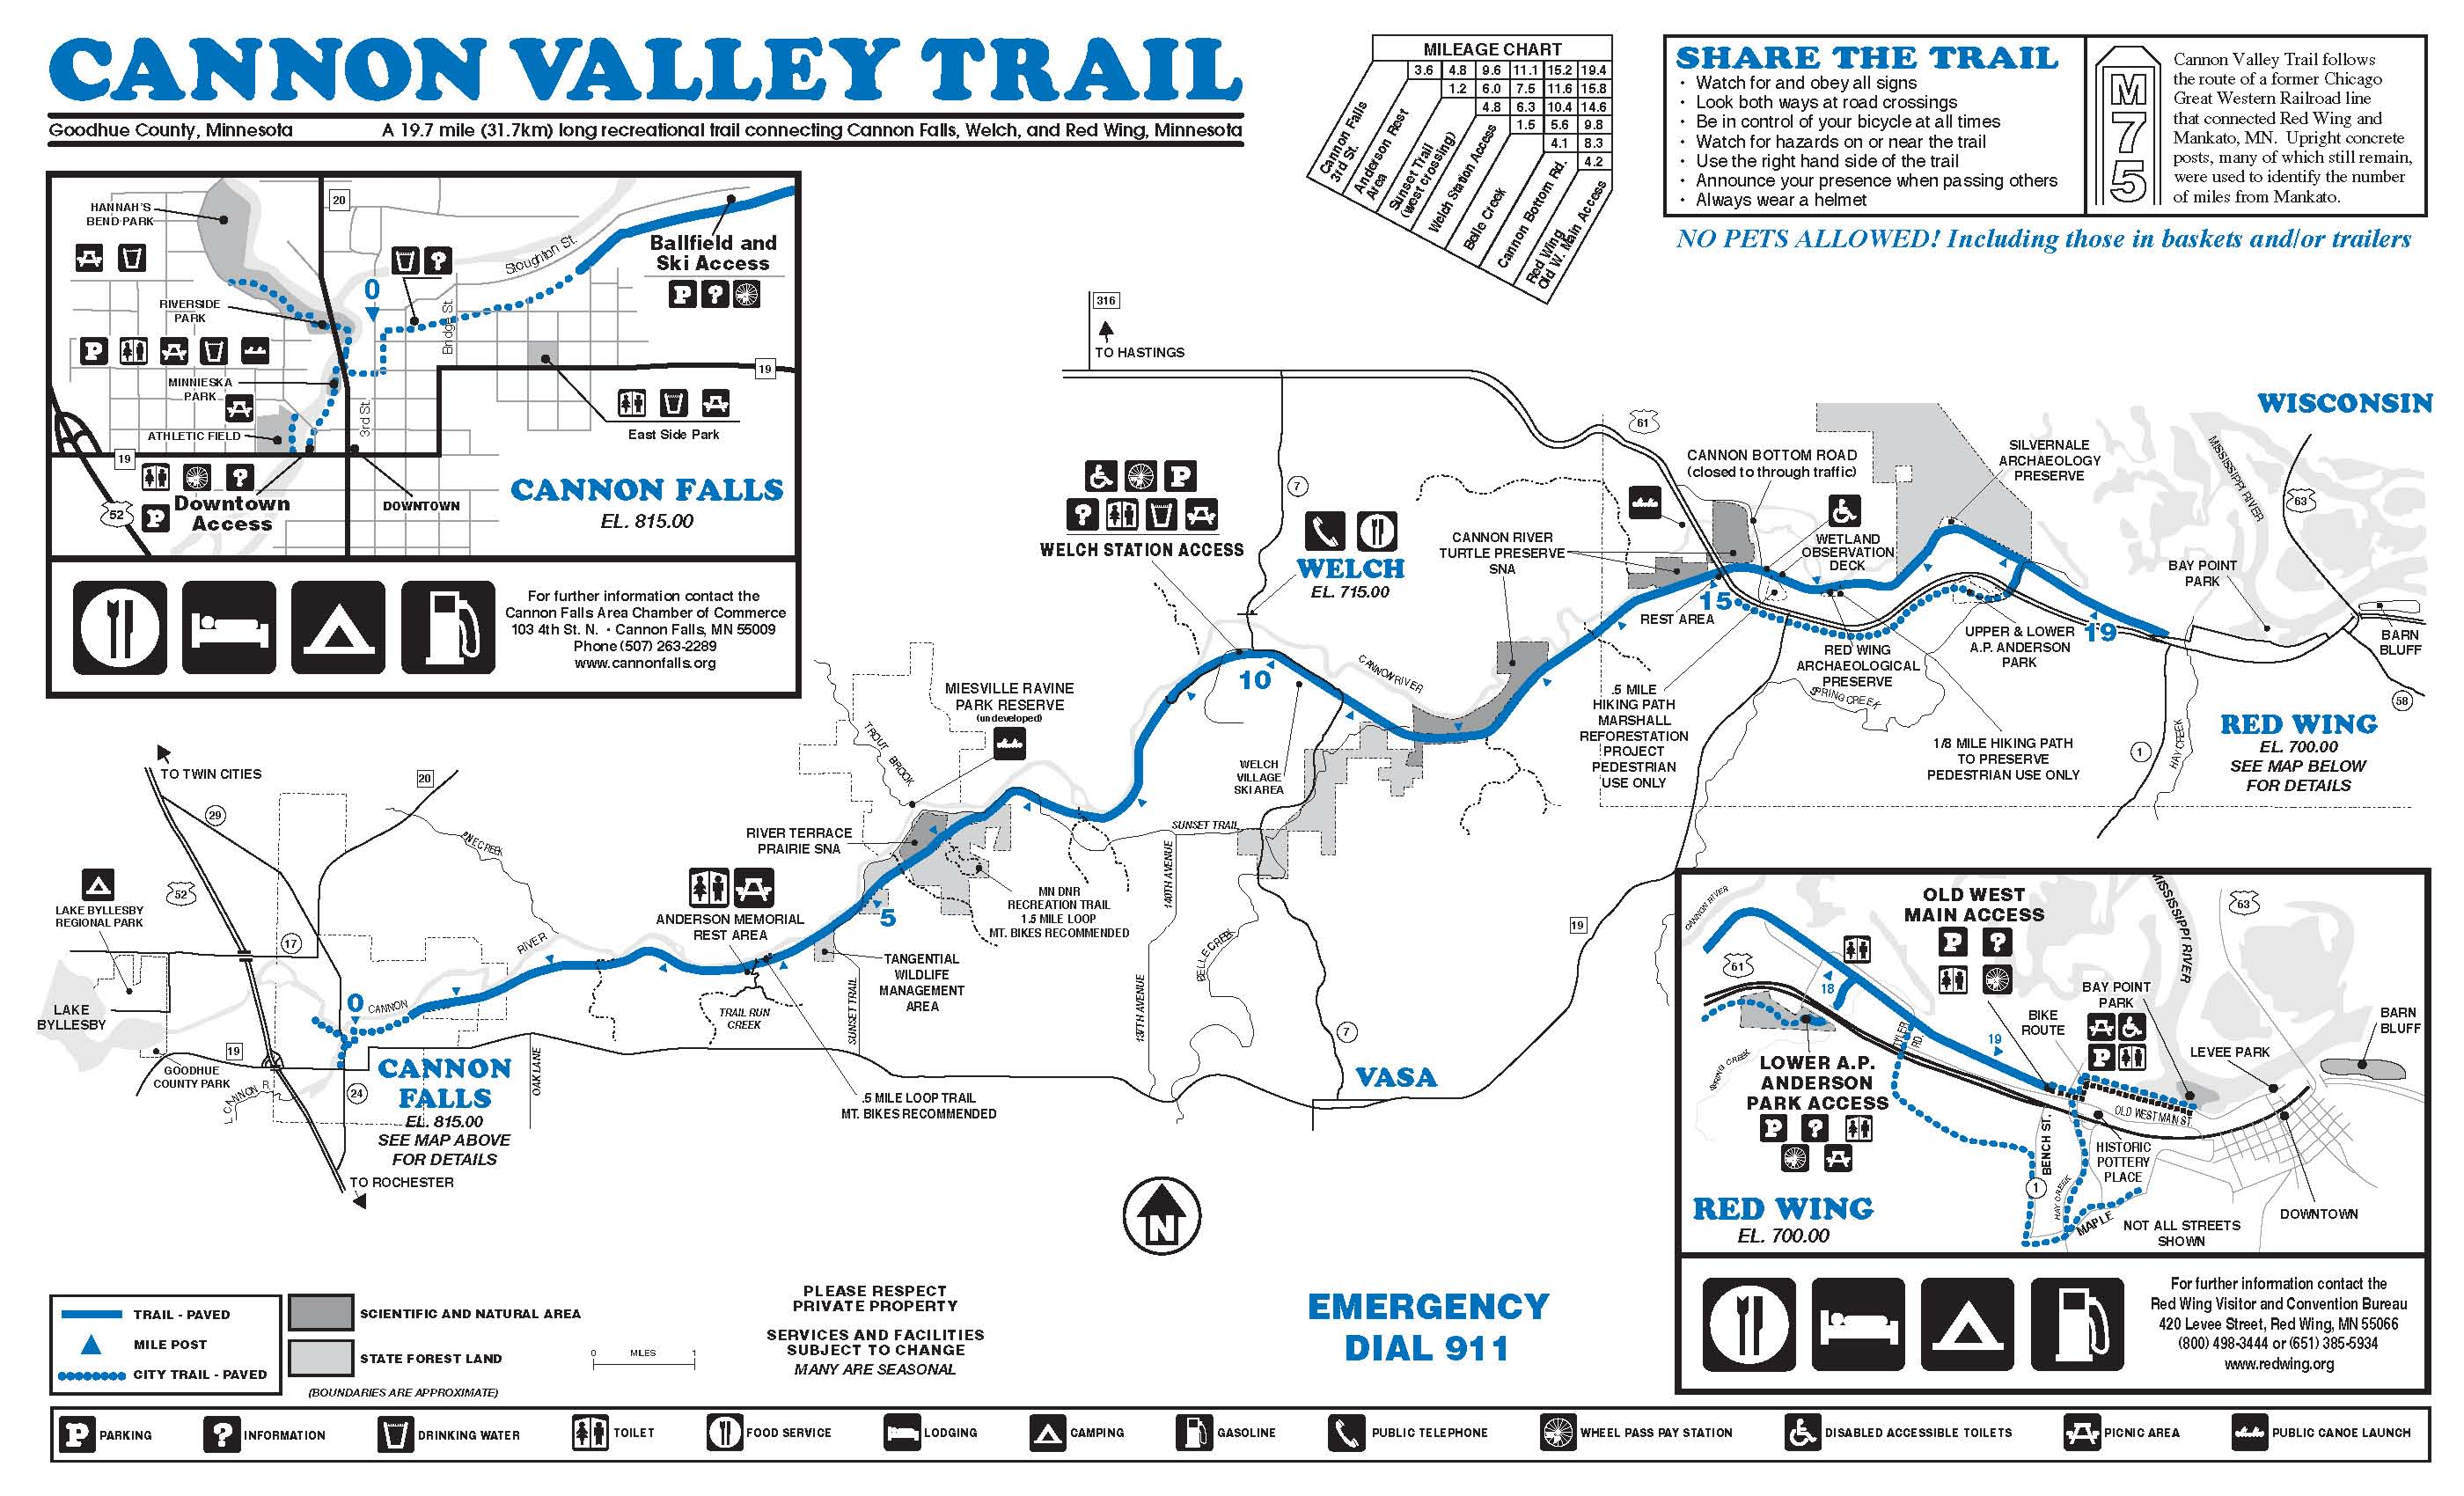 Trails | Goodhue County, MN - Official Website on burke mountain trail map, kennesaw mountain battlefield trail map, gunstock trail map, mt. hood meadows trail map, mount wachusett hiking trail map, mt. bachelor trail map, sugar mountain trail map, cannon mtn new hampshire, hunter mountain trail map, mount adams washington trail map, mt. mansfield trail map, mount monadnock hiking trails map, wachusett mountain trail map, black mountain trail map, sno mountain trail map, cannon ski trail map, chugach state park trail map, jay peak trail map, mcintyre trail map, kennesaw mountain park trail map,